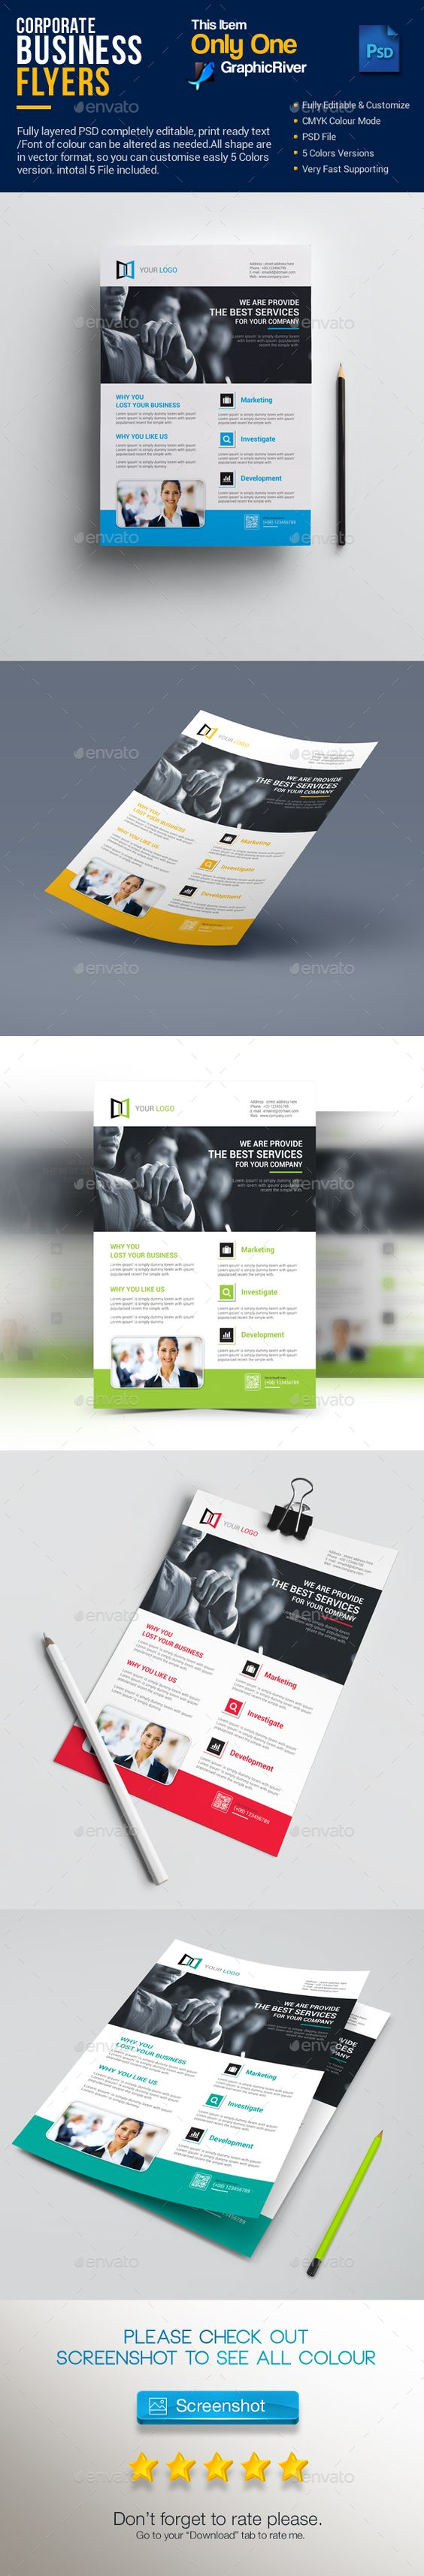 corporate business flyer design template corporate flyers design corporate business flyer design template corporate flyers design template vector eps ai illustrator